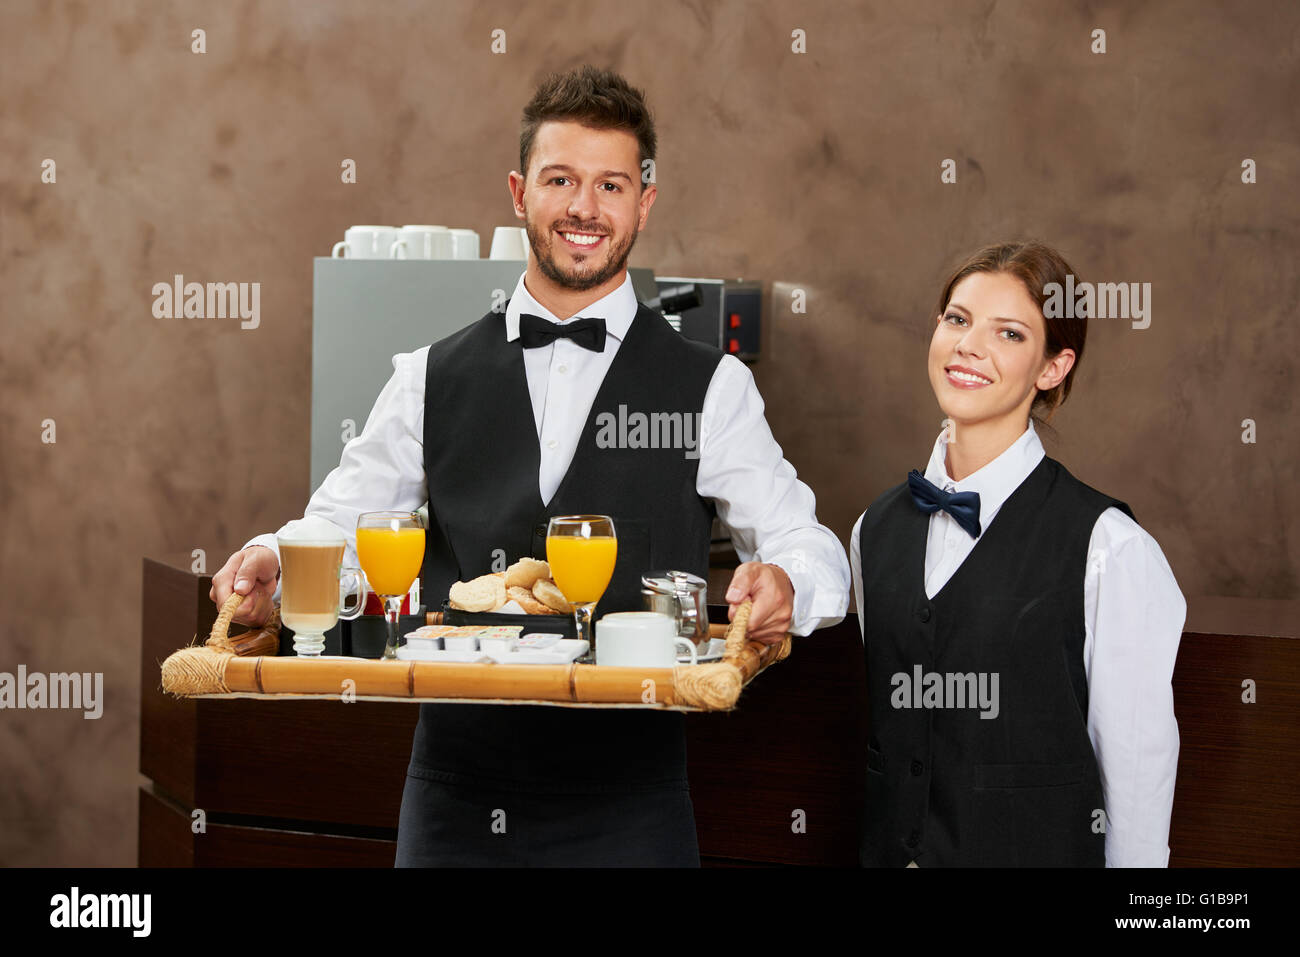 Hotel Waiter High Resolution Stock Photography And Images Alamy